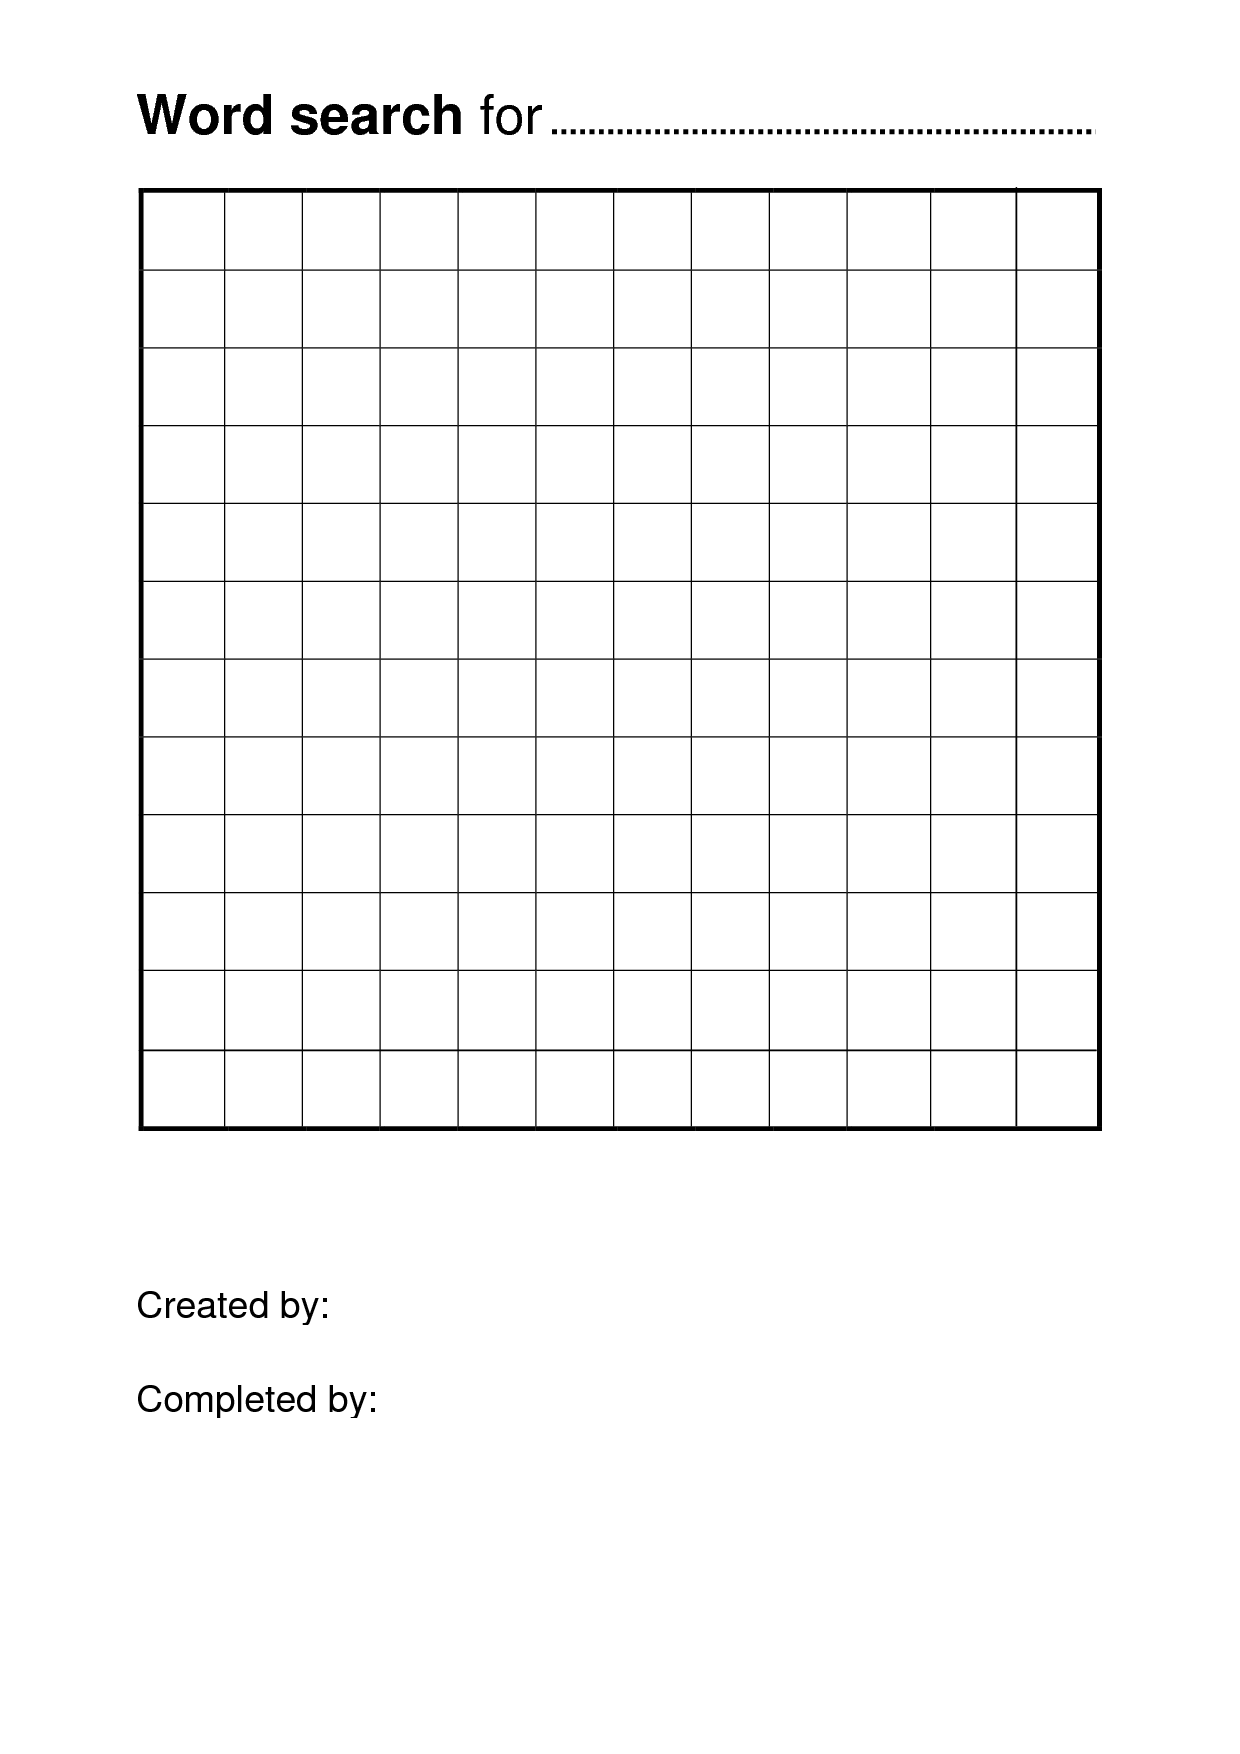 Terrible image intended for blank word search printable